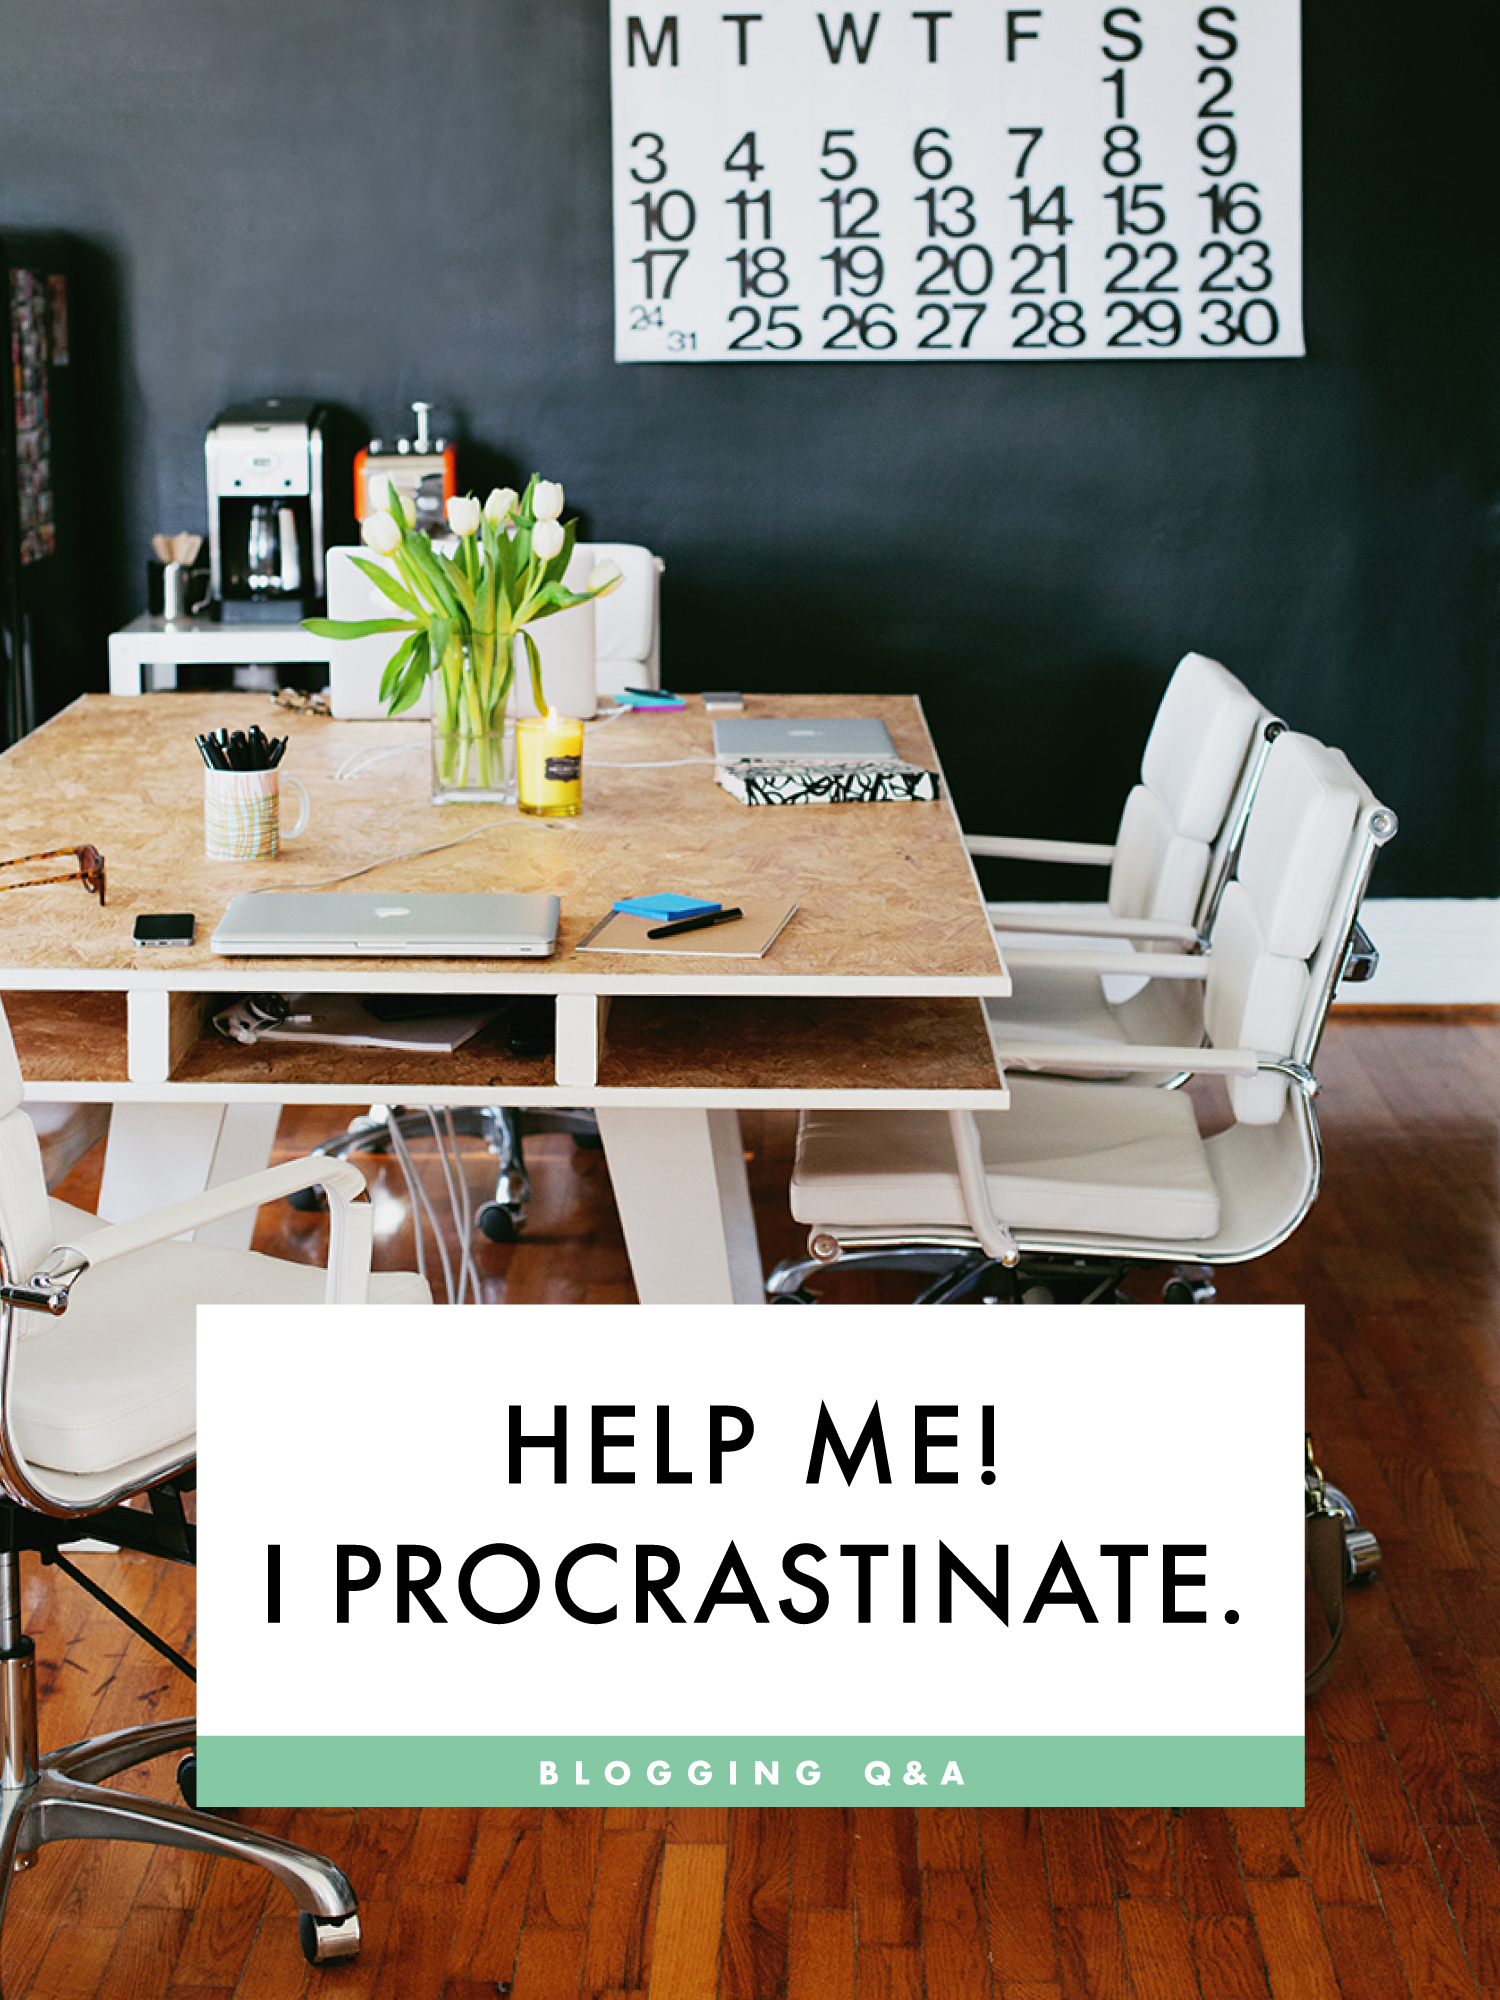 Tips to avoid procrasination